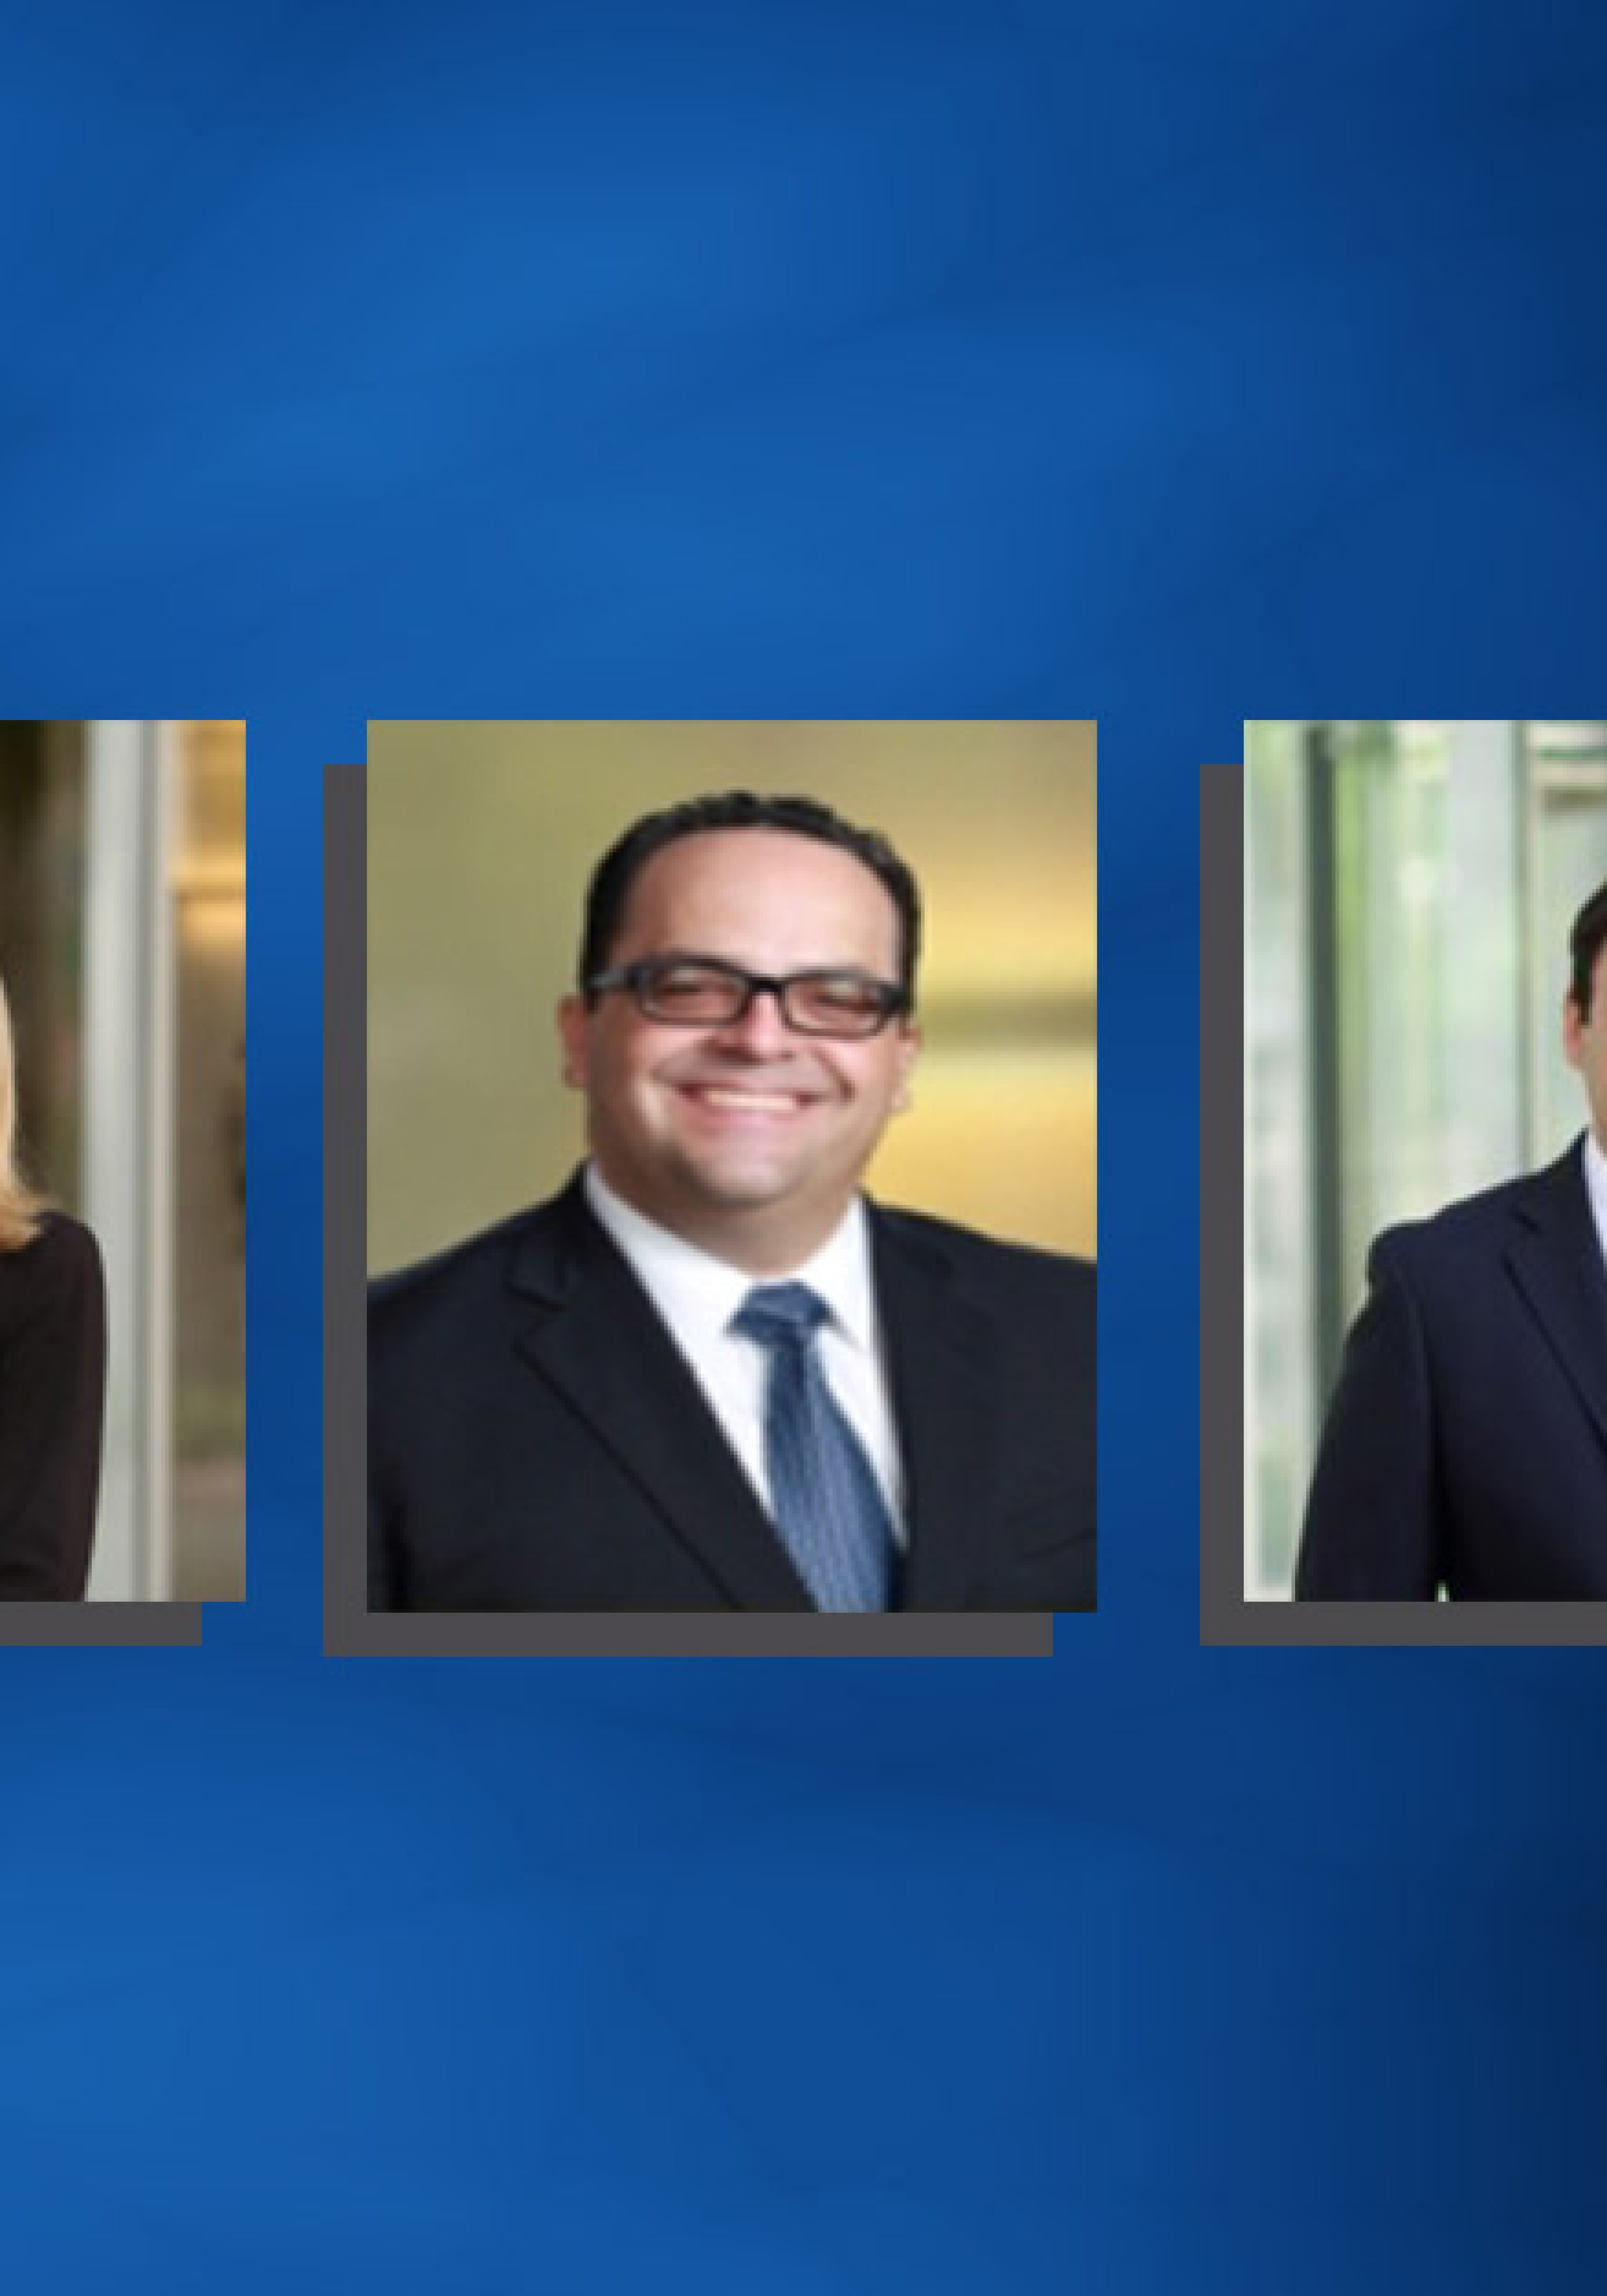 Stearns Weaver Miller adds attorneys in Tallahassee, Miami, Tampa